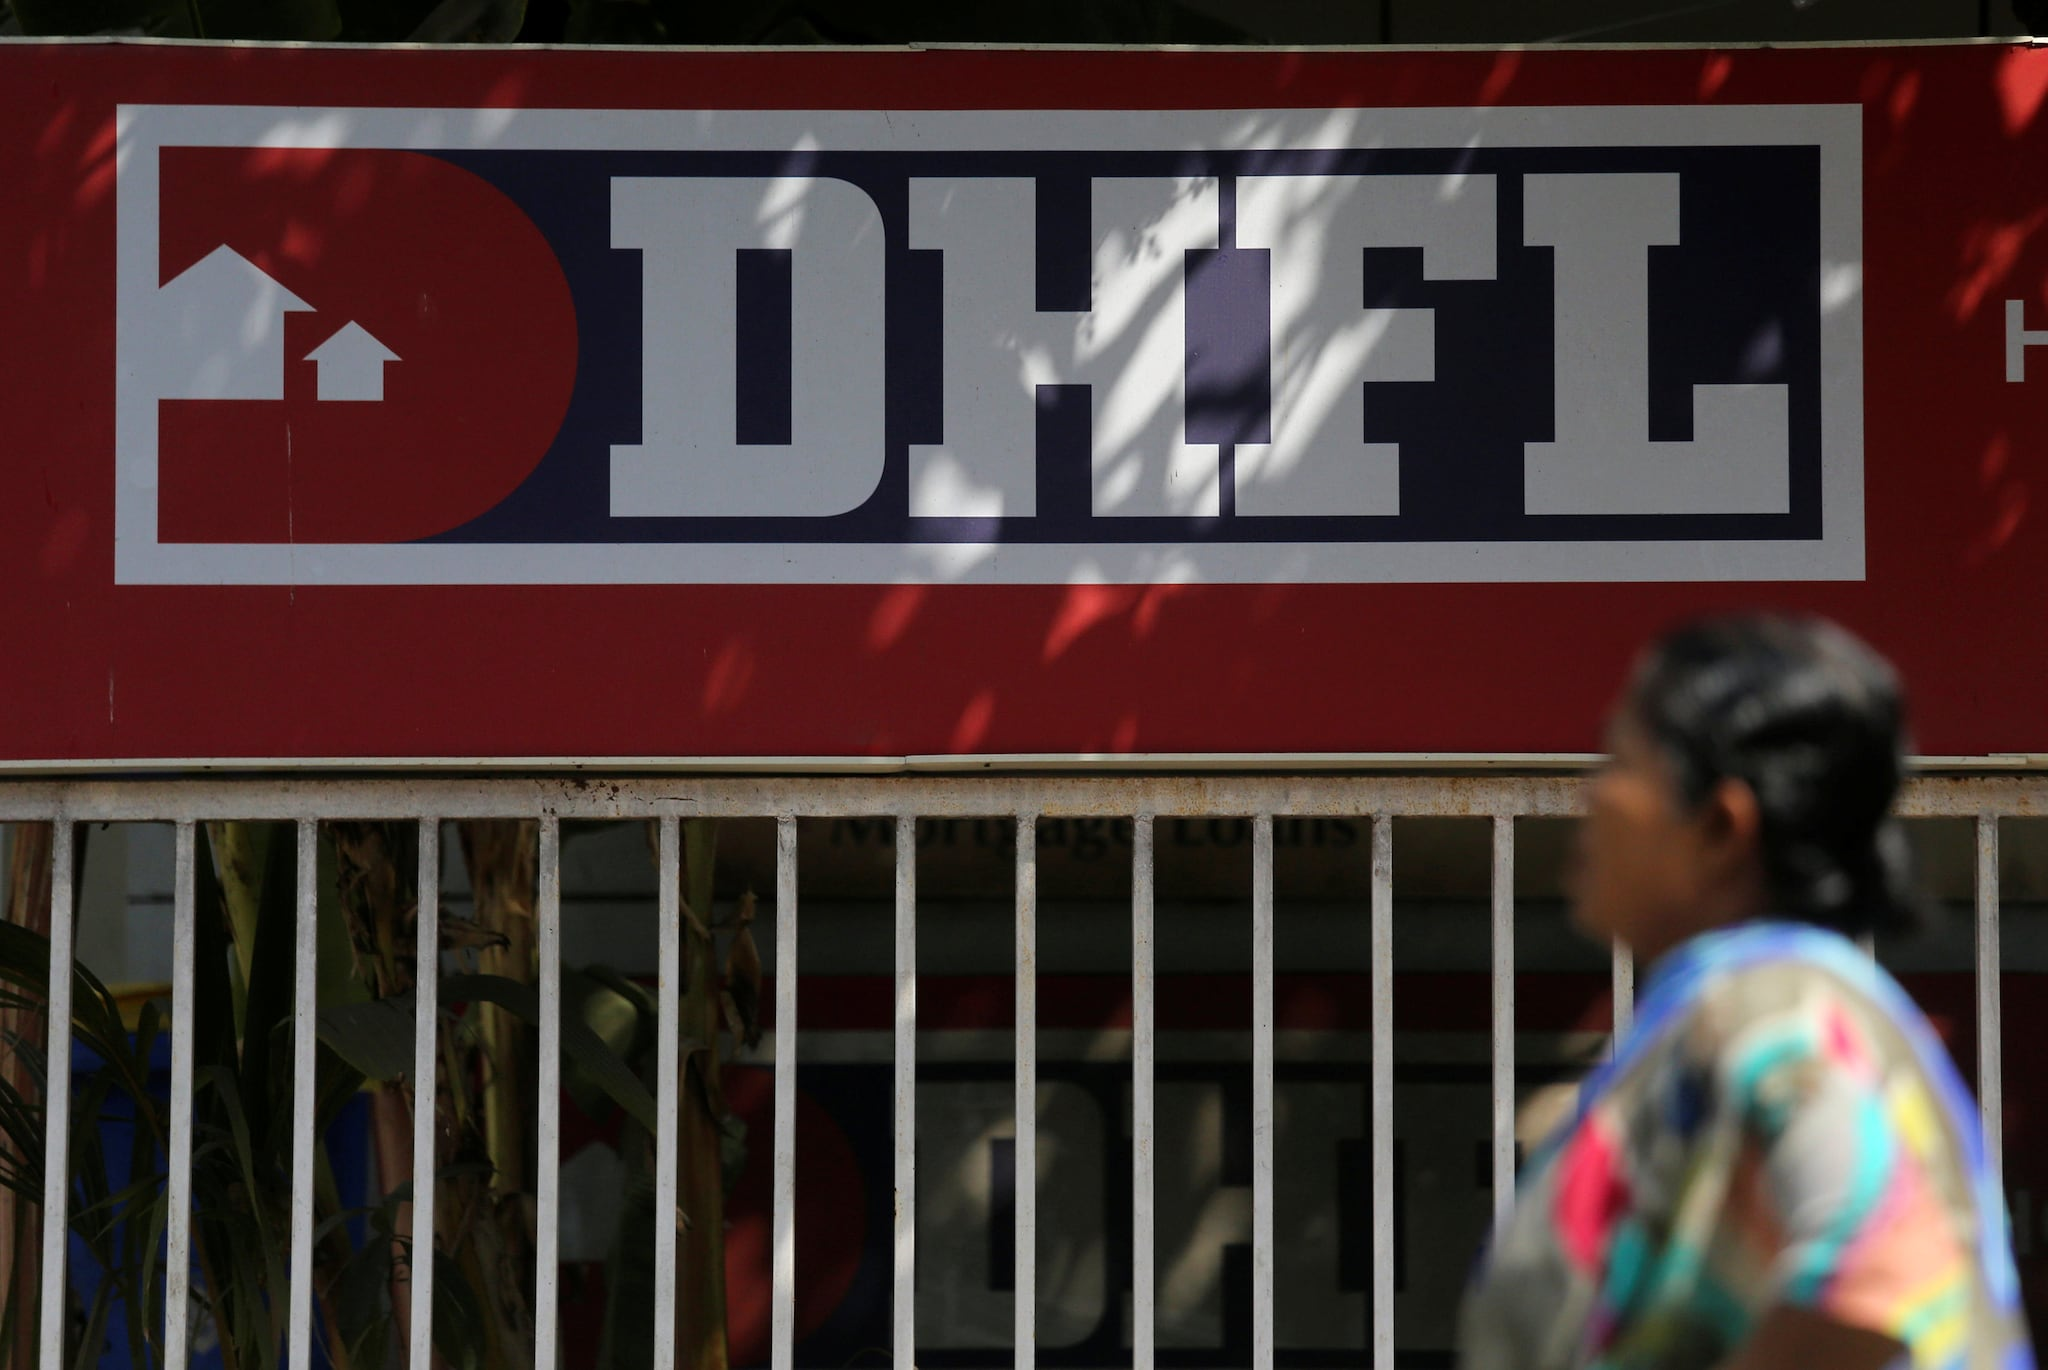 Dewan Housing Finance Corporation Limited (DHFL) shares surged 11.49 percent to Rs 125.70 per share. Intraday, the stock rose to a high of 126.40 per share. (Image: Reuters)